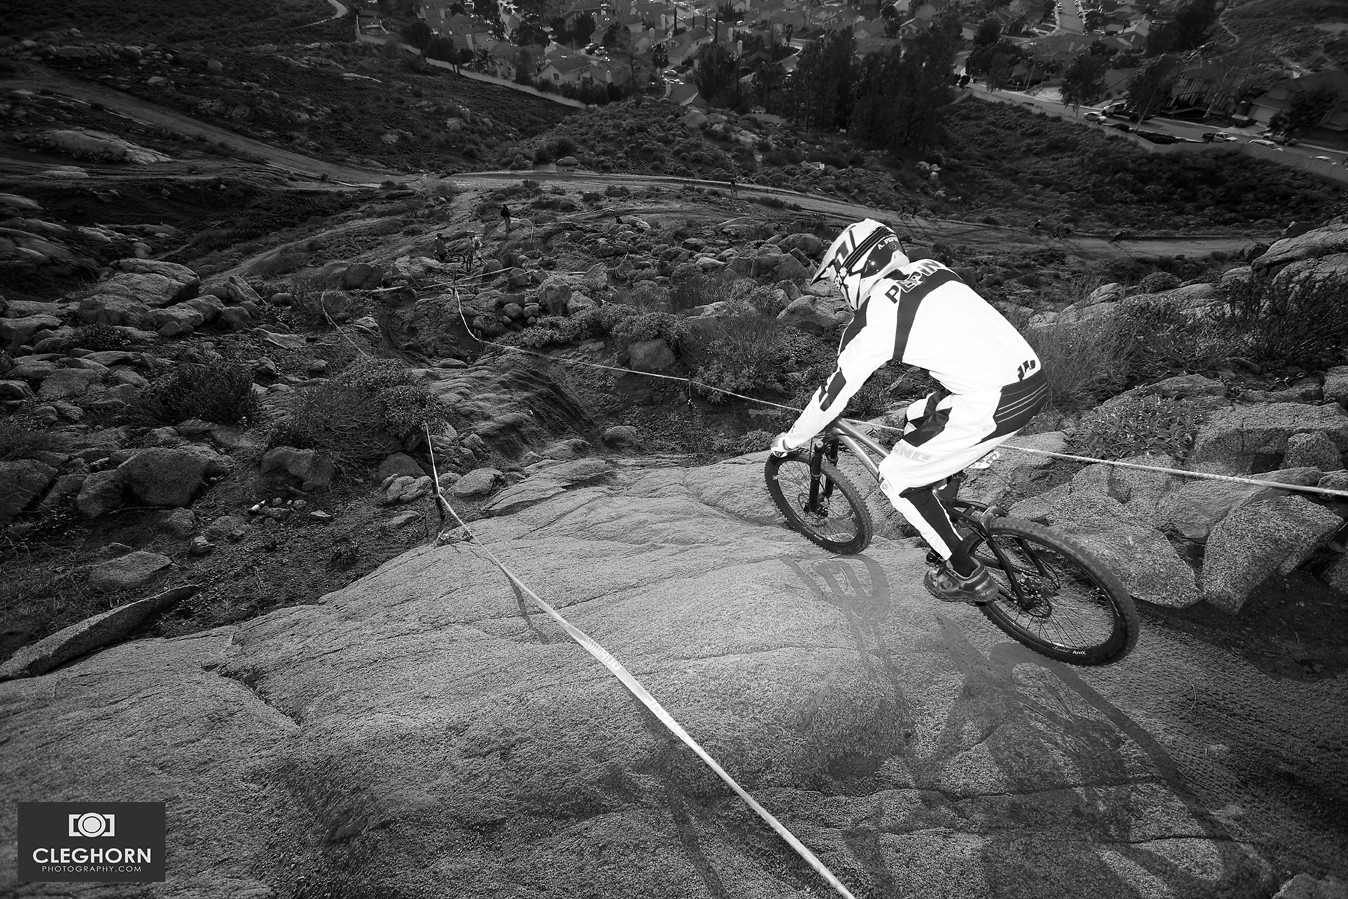 Andre Pepin - Cleghorn Photography - Mountain Biking Pictures - Vital MTB